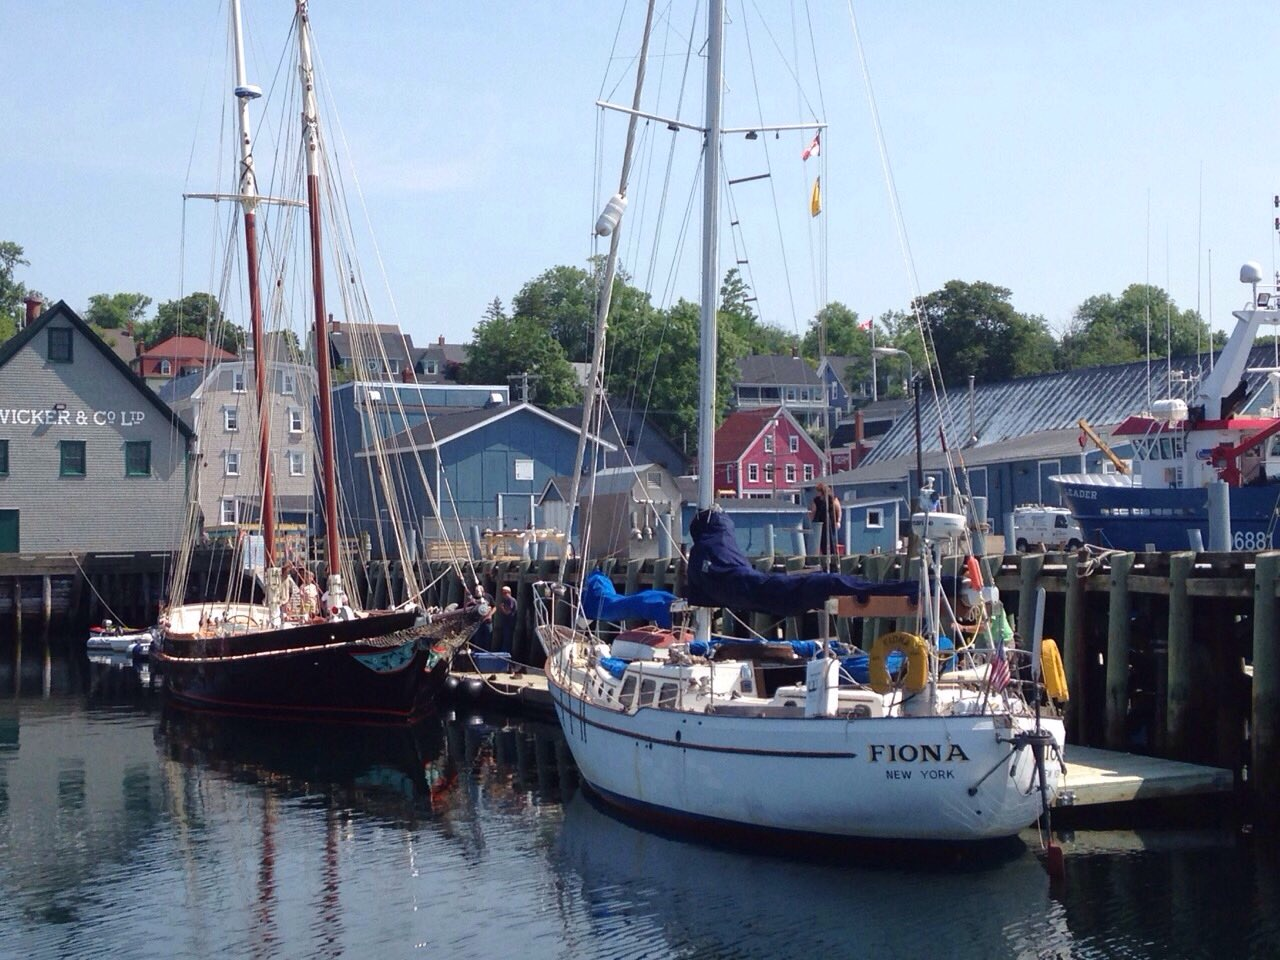 Eric Forsyth's Westsail 42 'Fiona' - he built it from a bare hull.